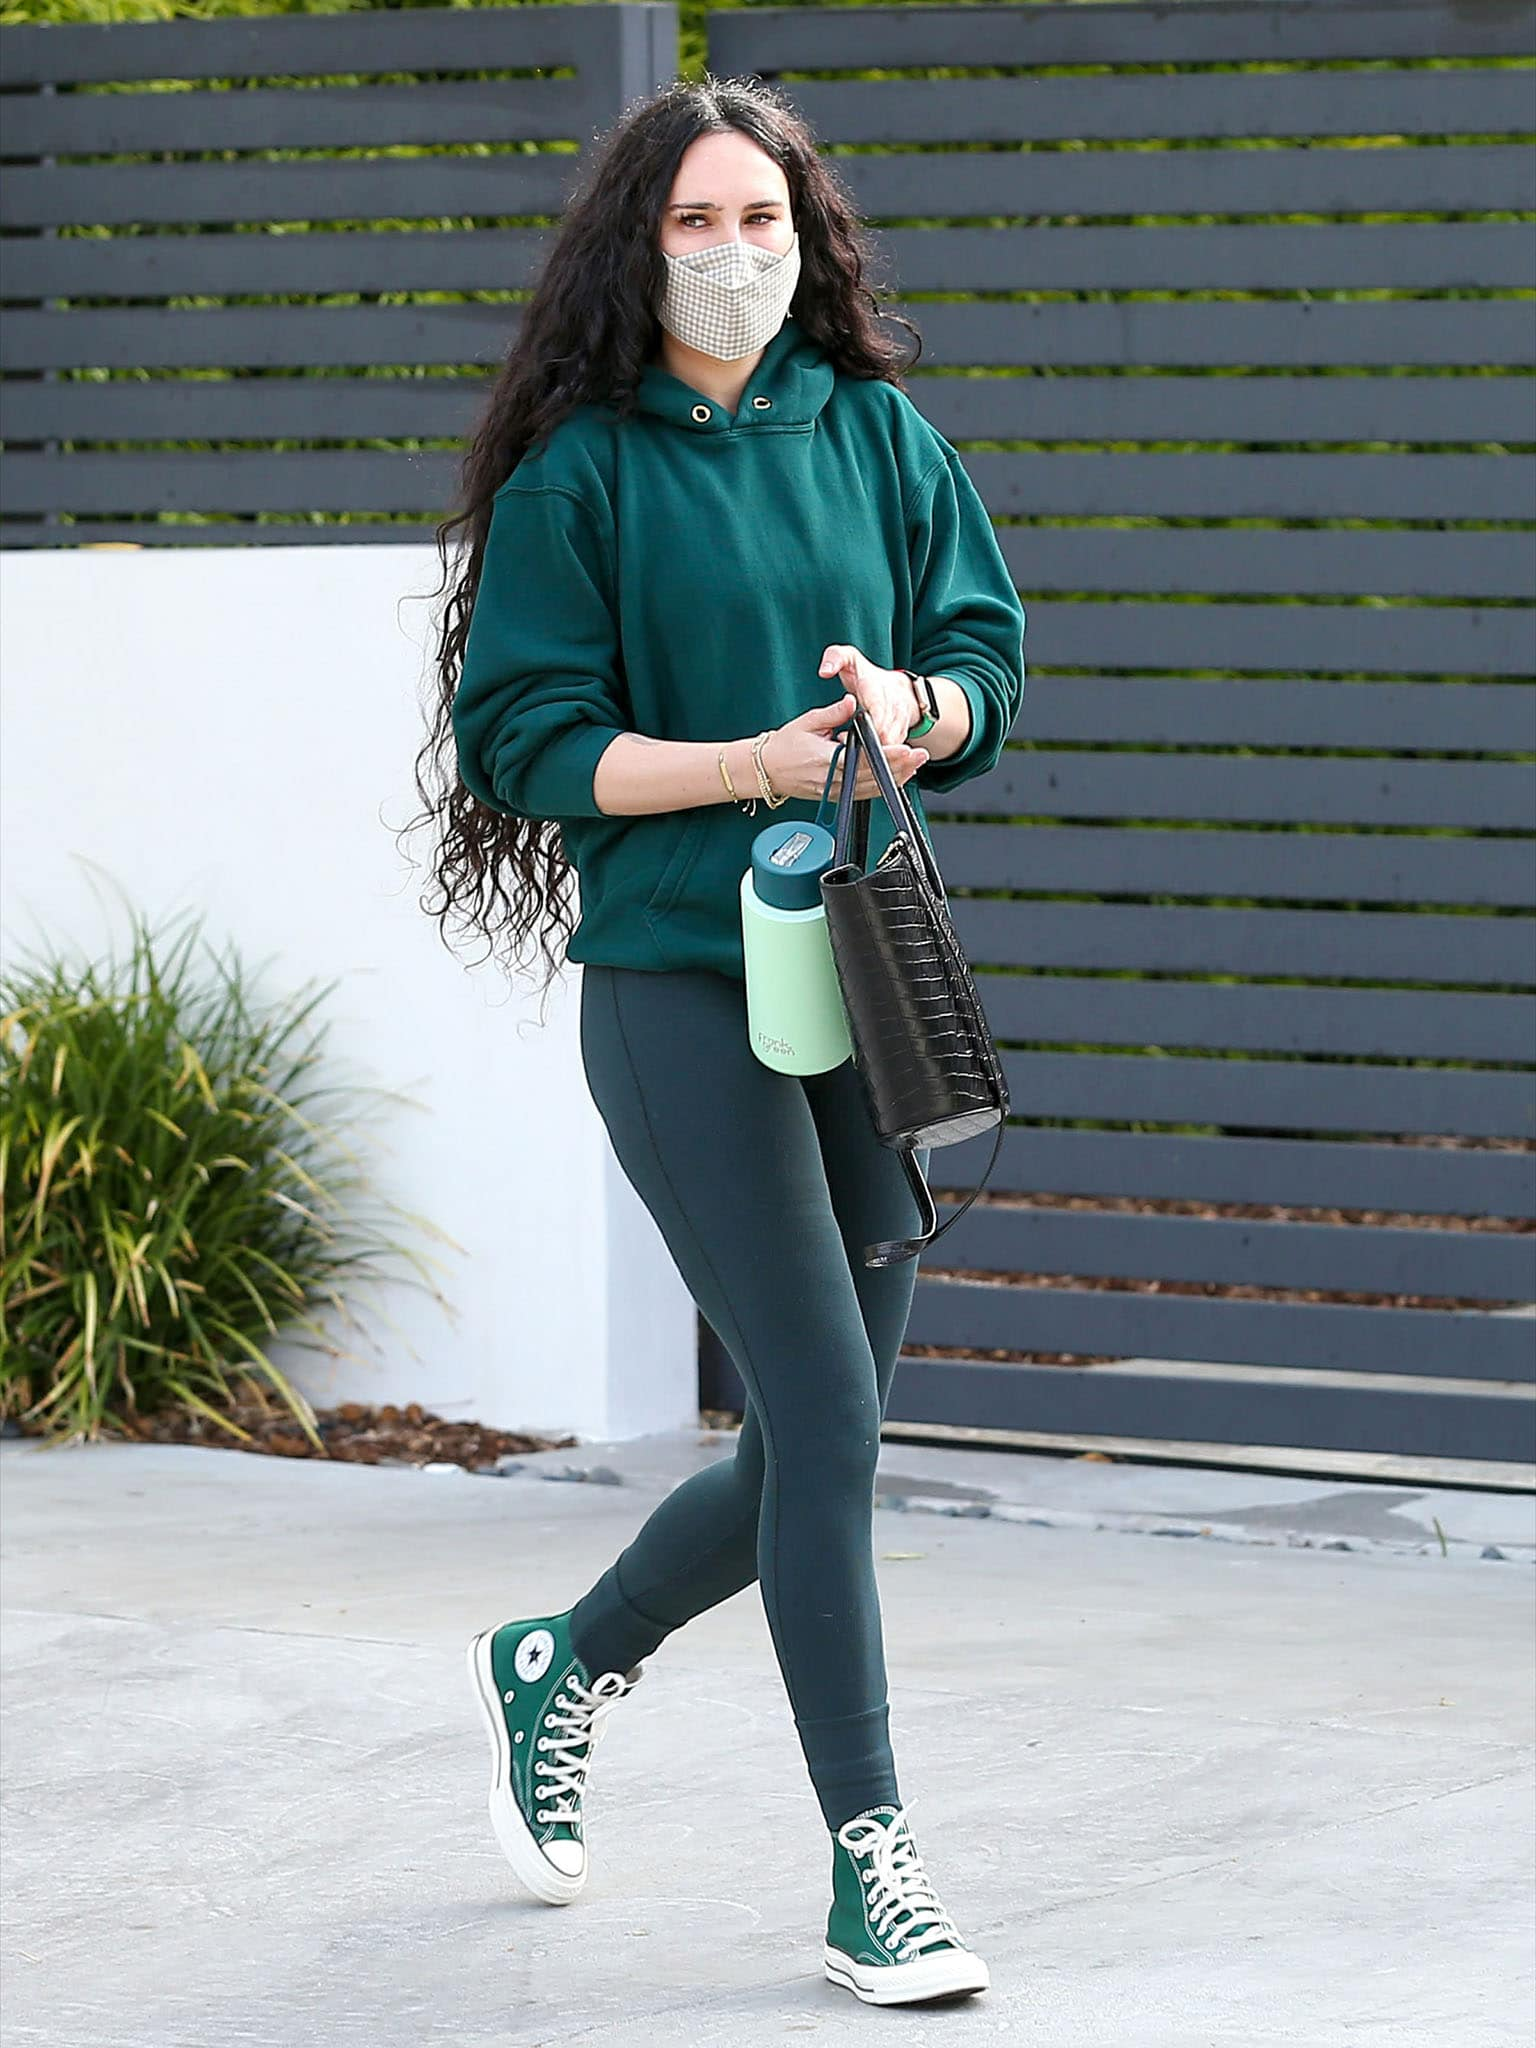 Rumer Willis opts for head-to-toe green workout outfit, with a green hoodie and green leggings